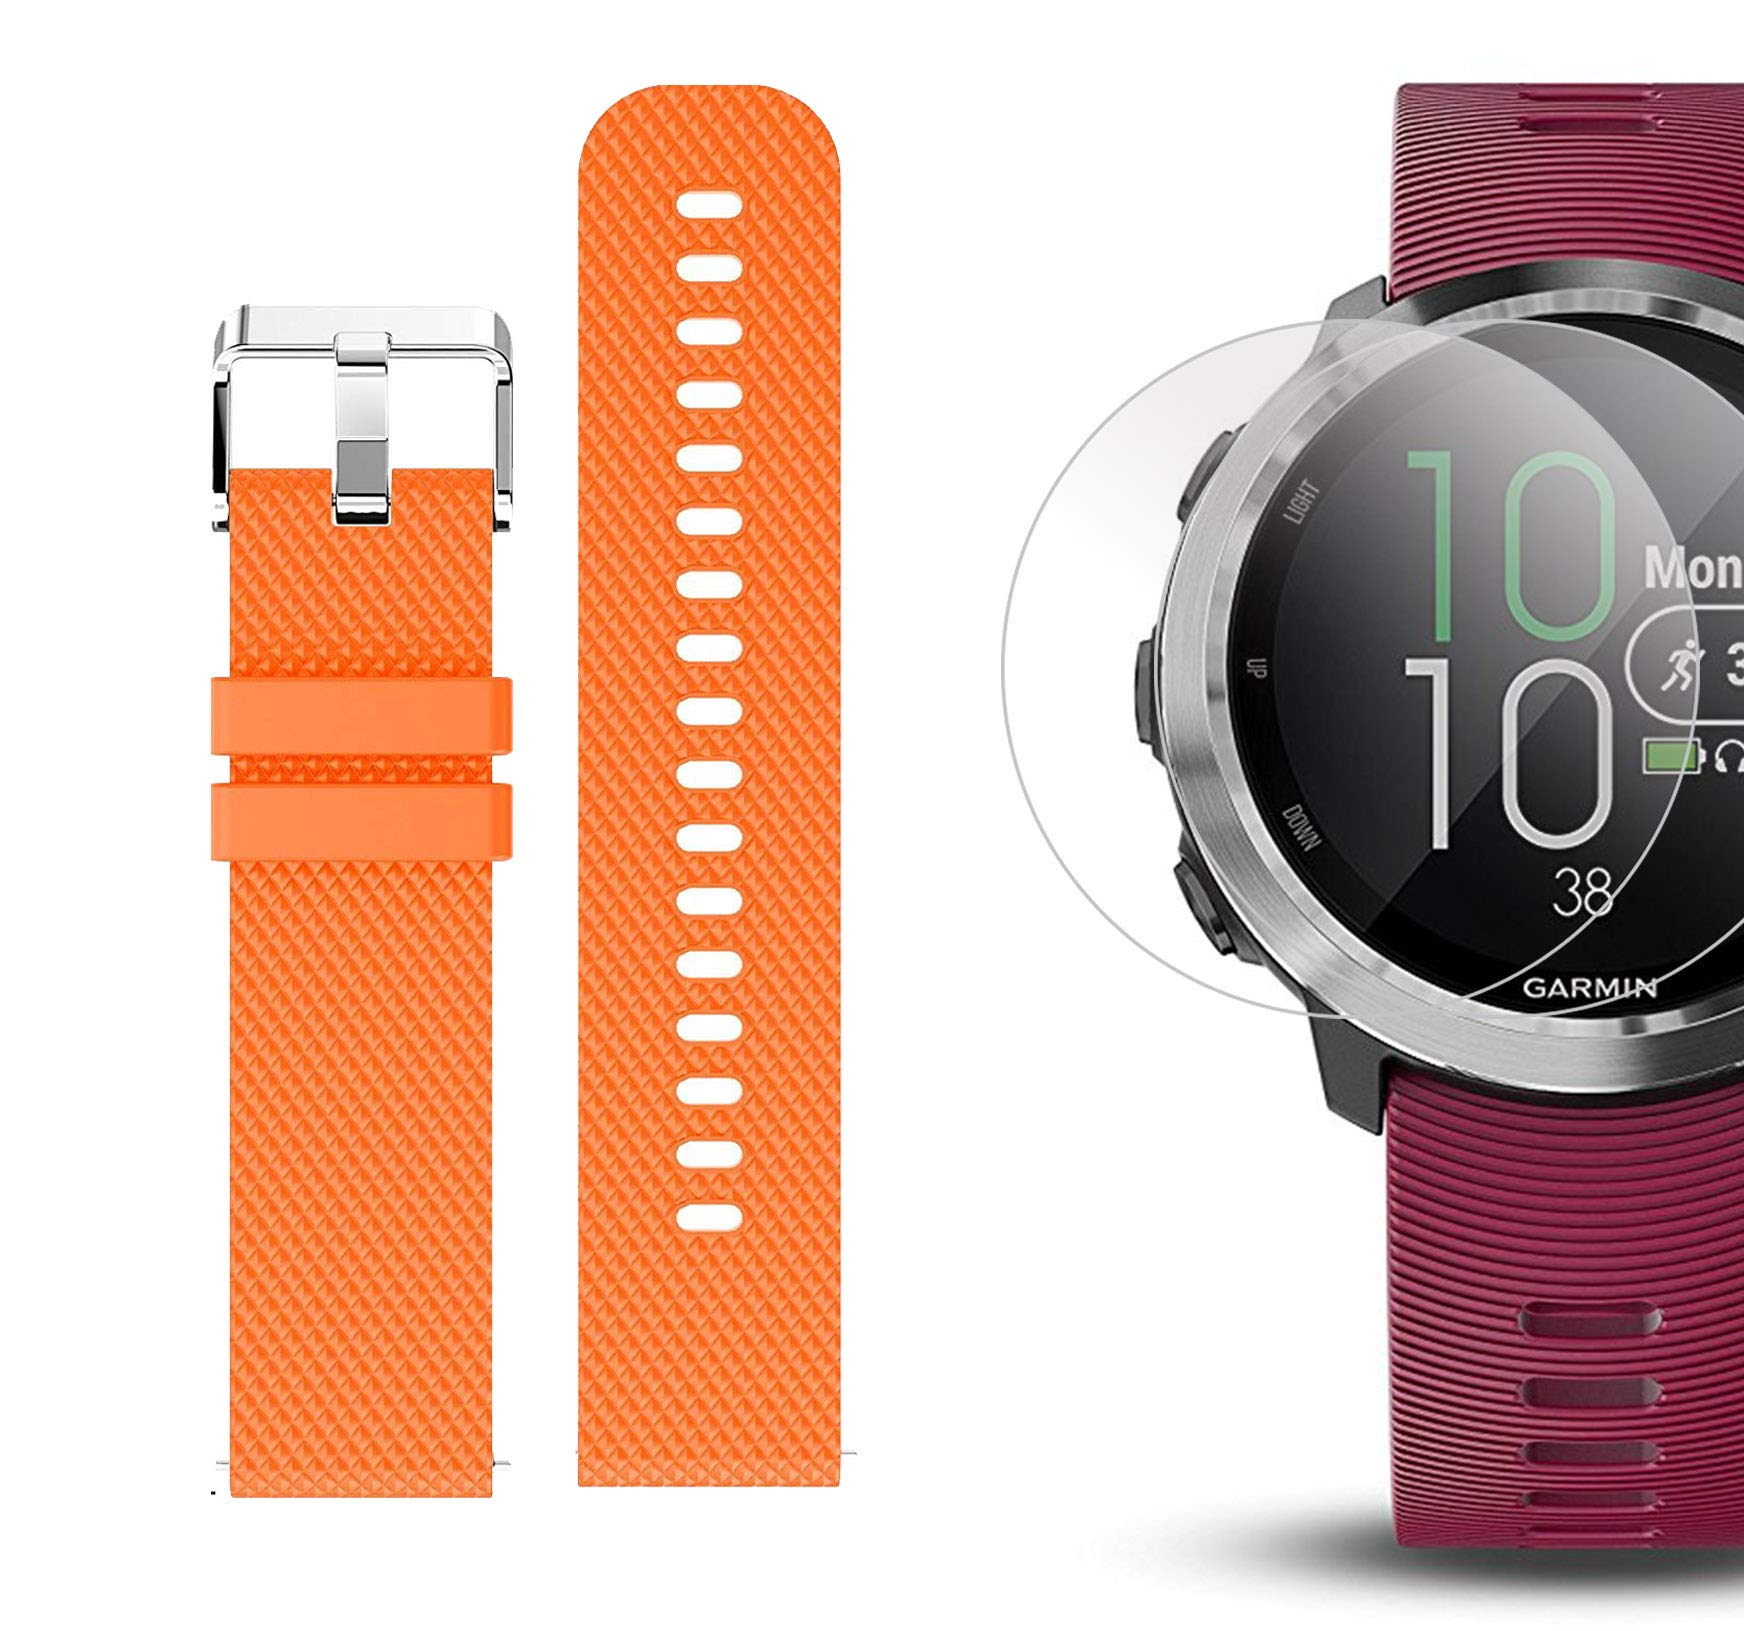 Garmin Forerunner 645 Music Bundle with Extra Band & HD Screen Protector Film (x4) | Running GPS Watch, Wrist HR, Music & Spotify, Garmin Pay (Cerise + Music, Orange) by PlayBetter (Image #6)